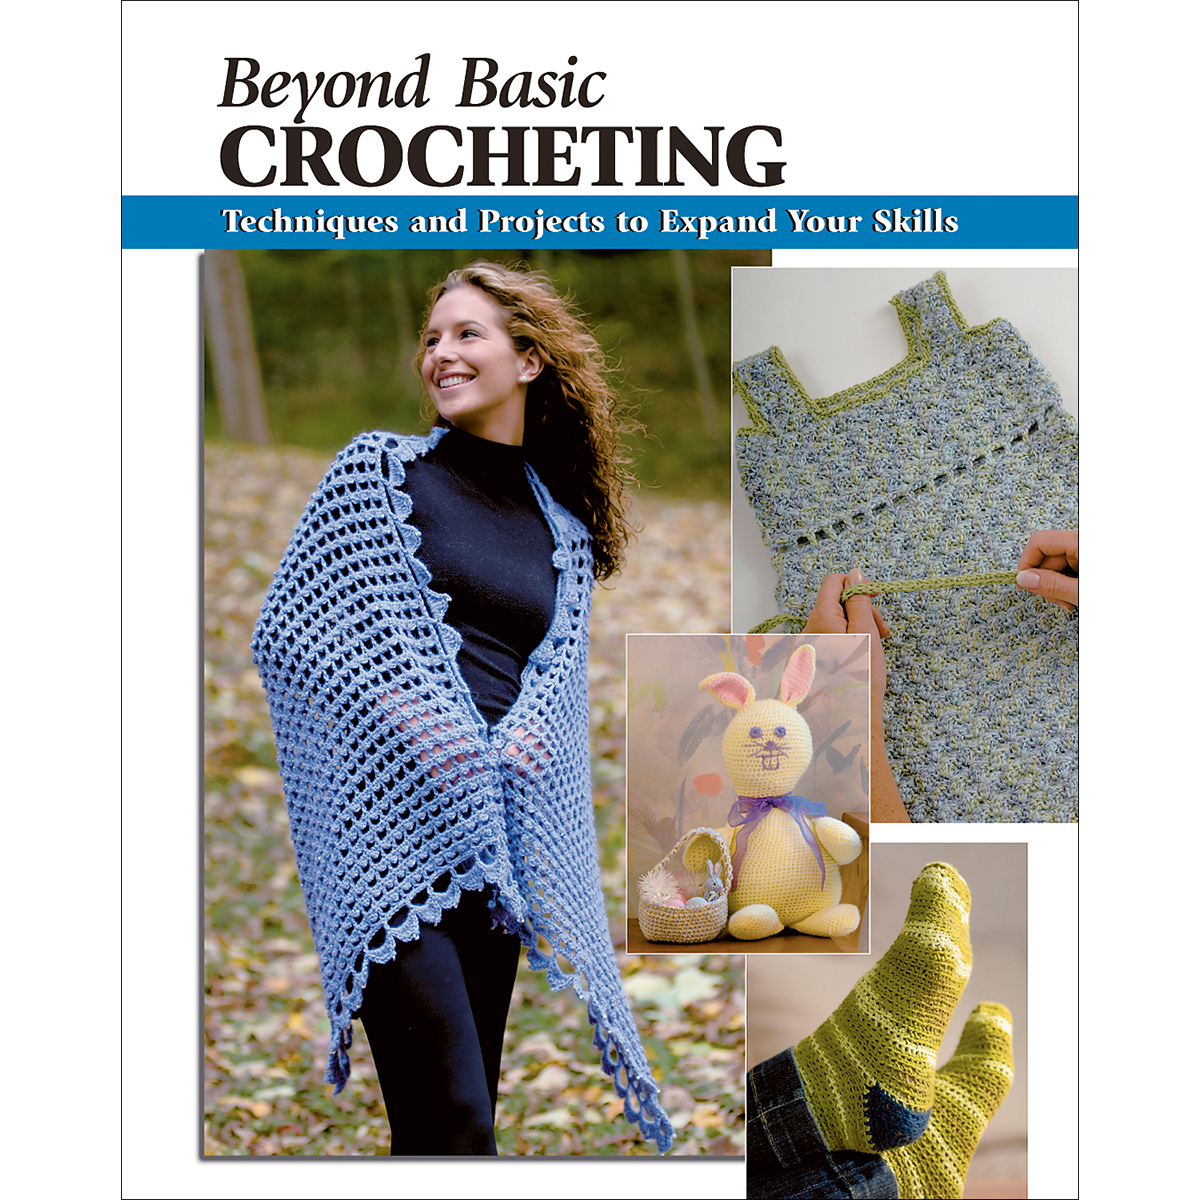 Stackpole Books-Beyond Basic Crocheting